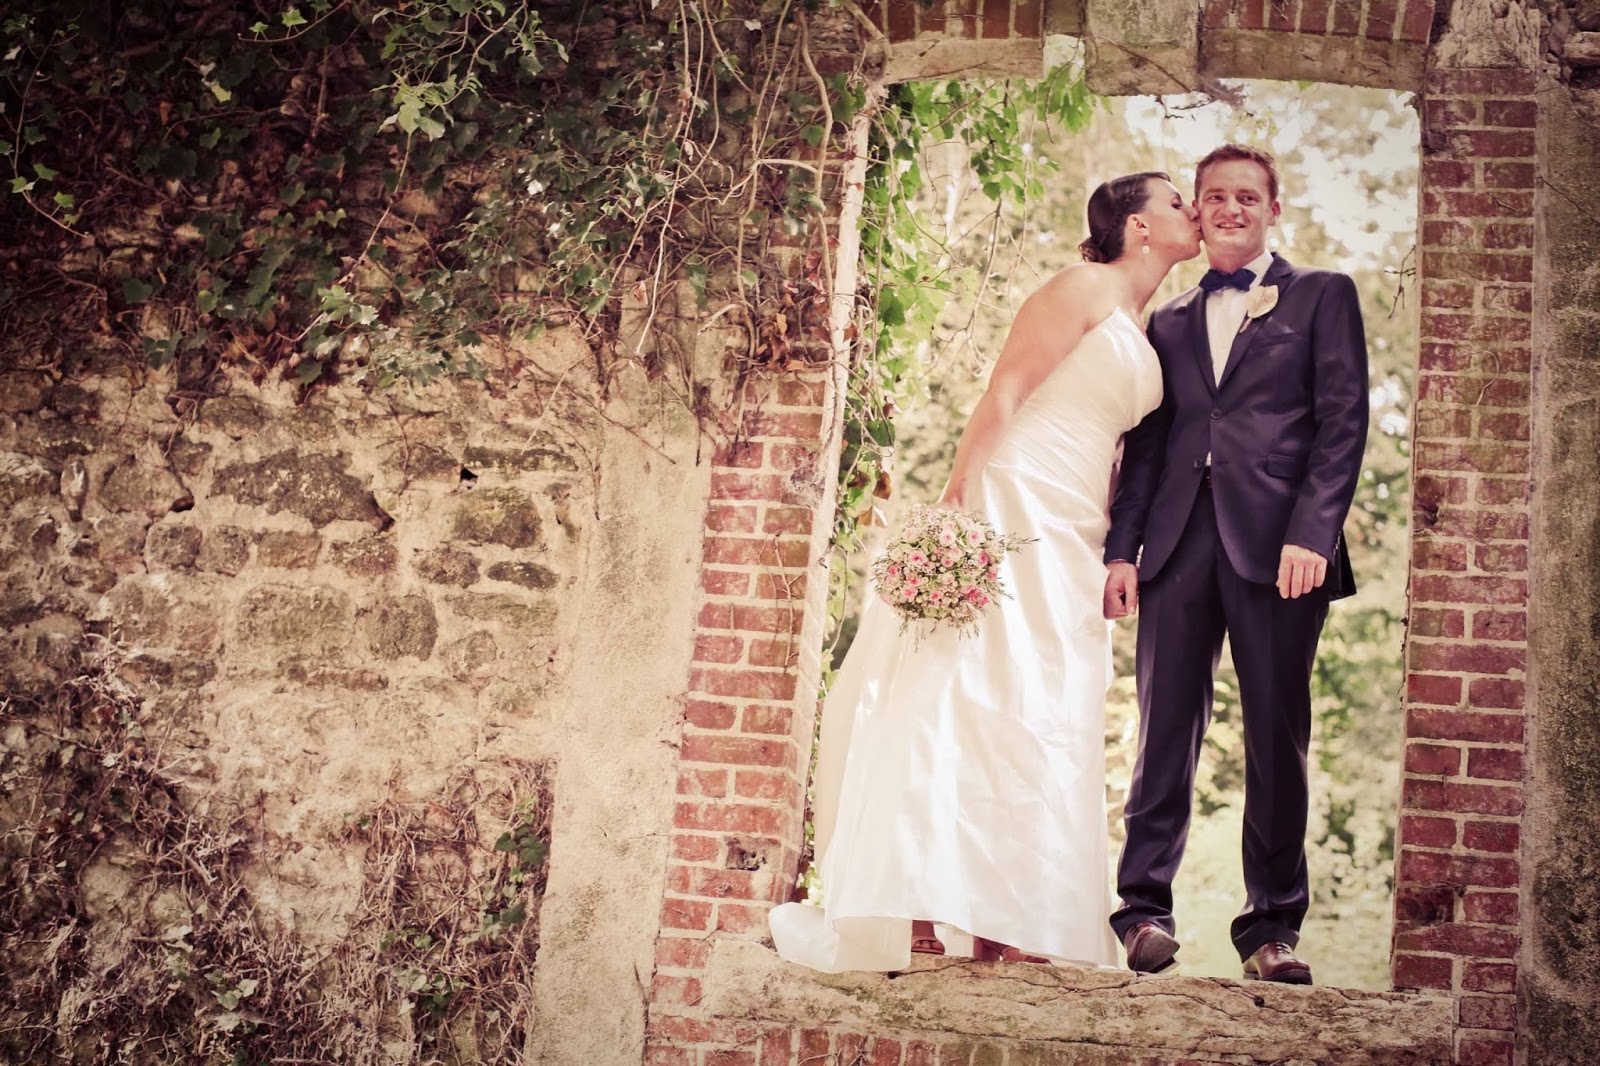 Retro styled wedding photography by elisabeth Perotin, the bride and groom in a vintage wall